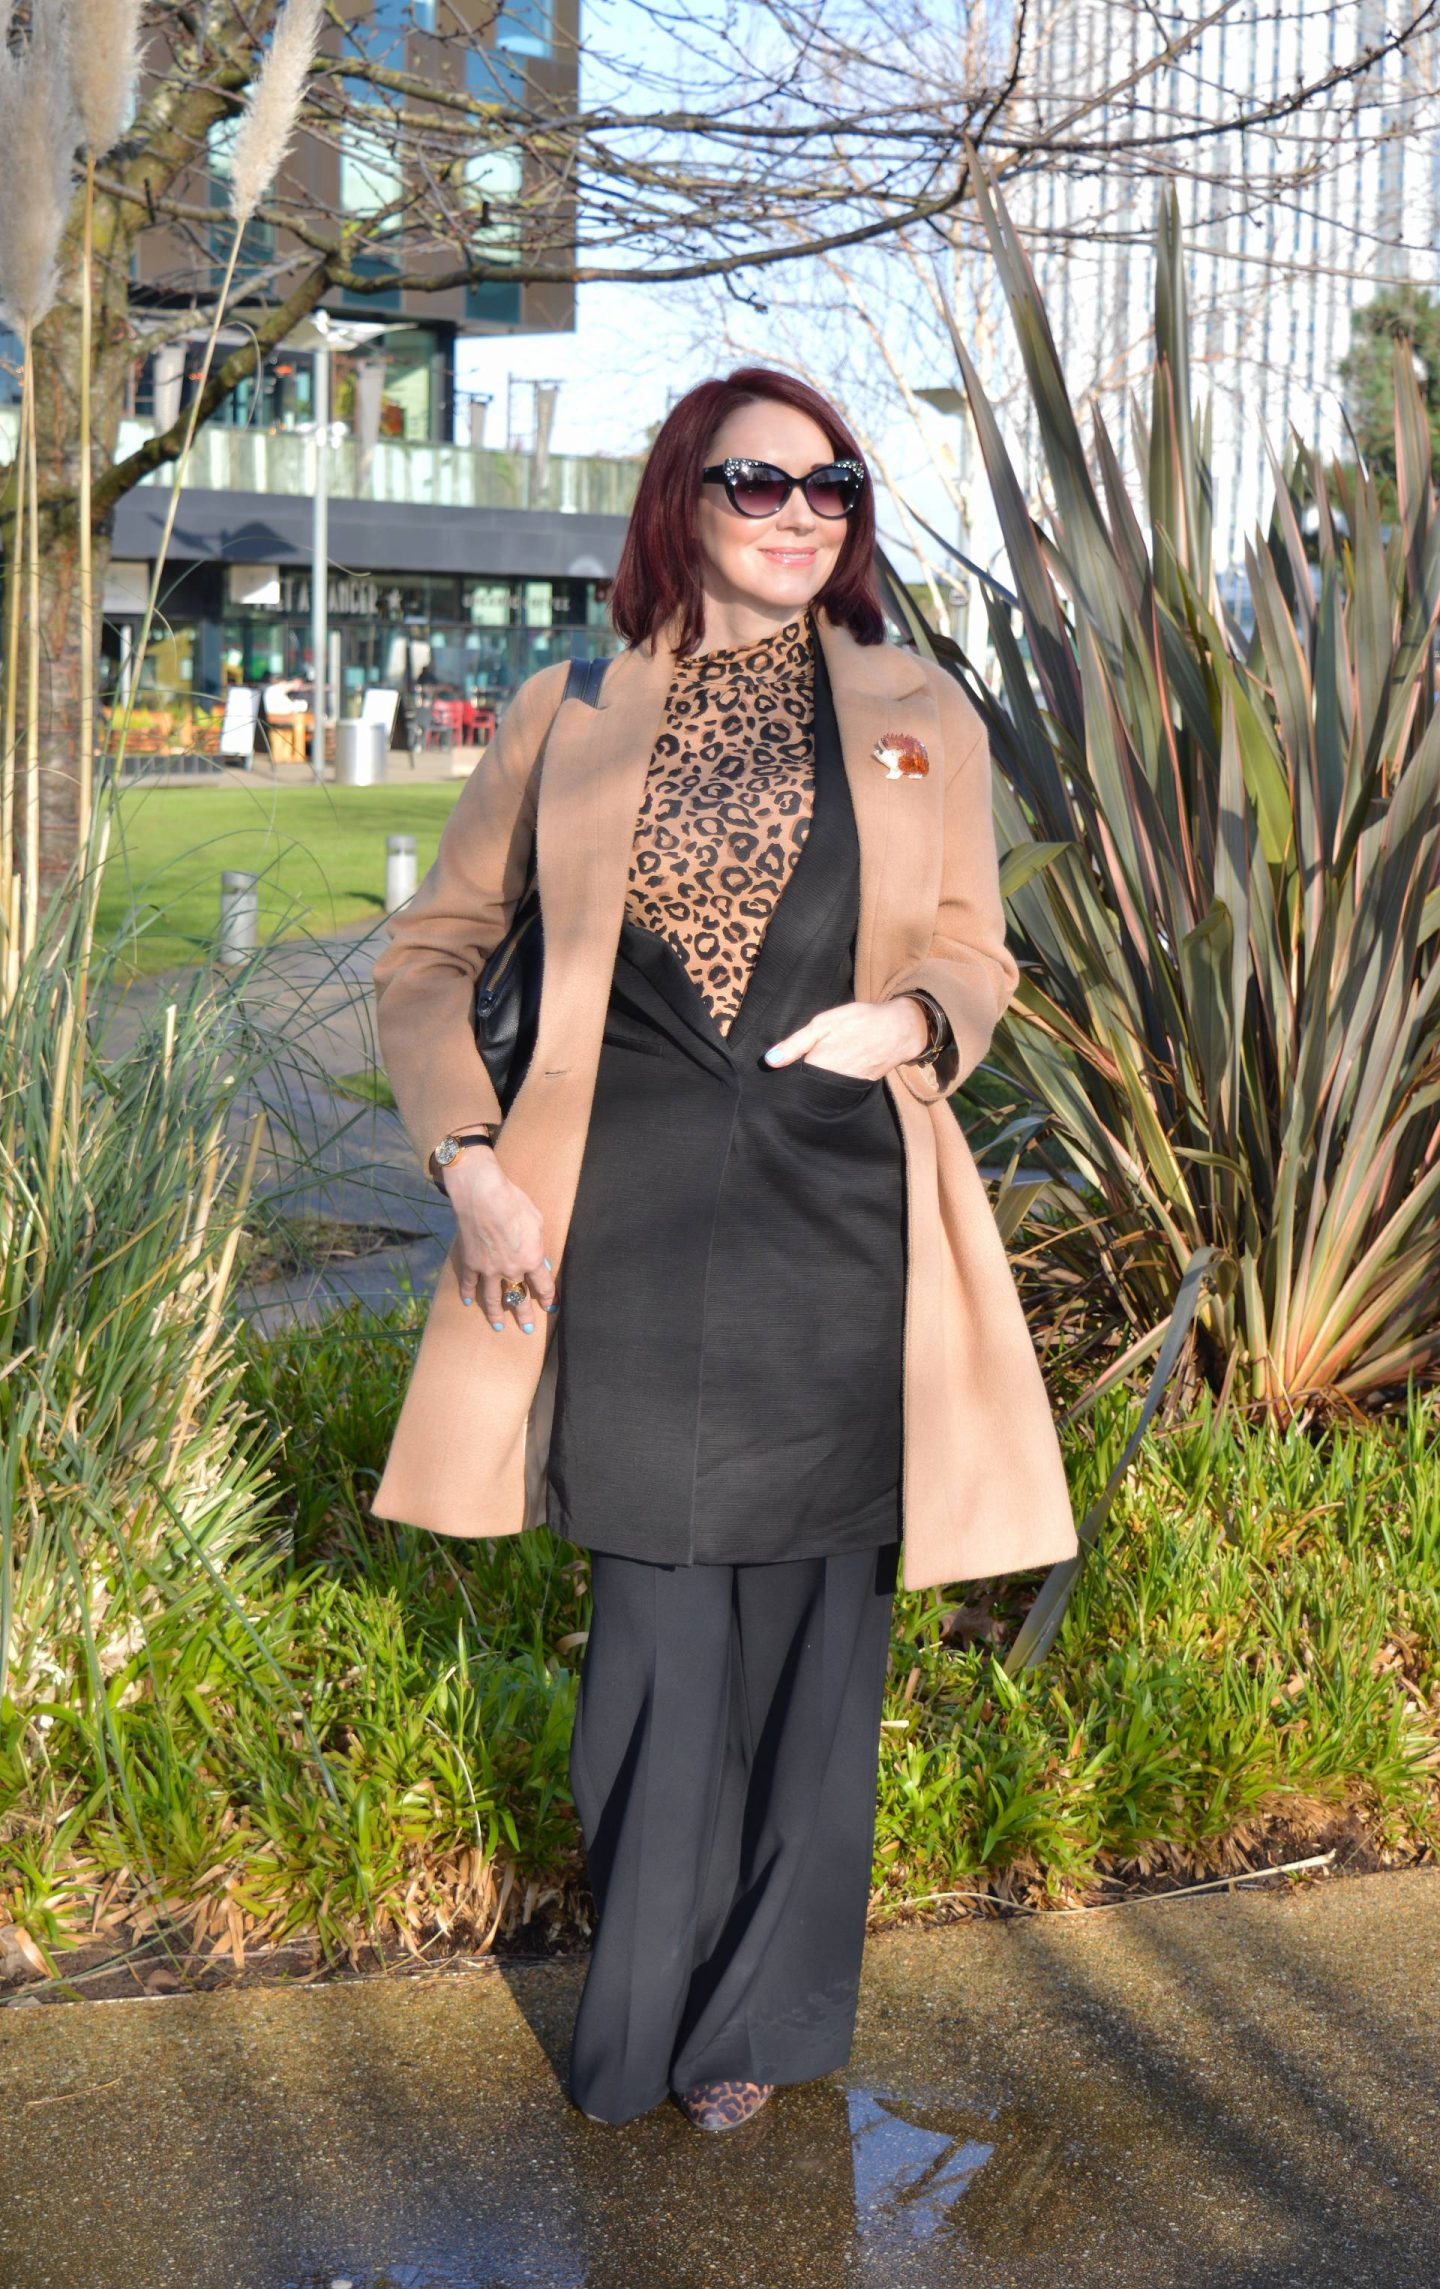 Classic Black and Leopard Print, Marks & Spencer black sleeveless jacket, Phase Eight long camel coat